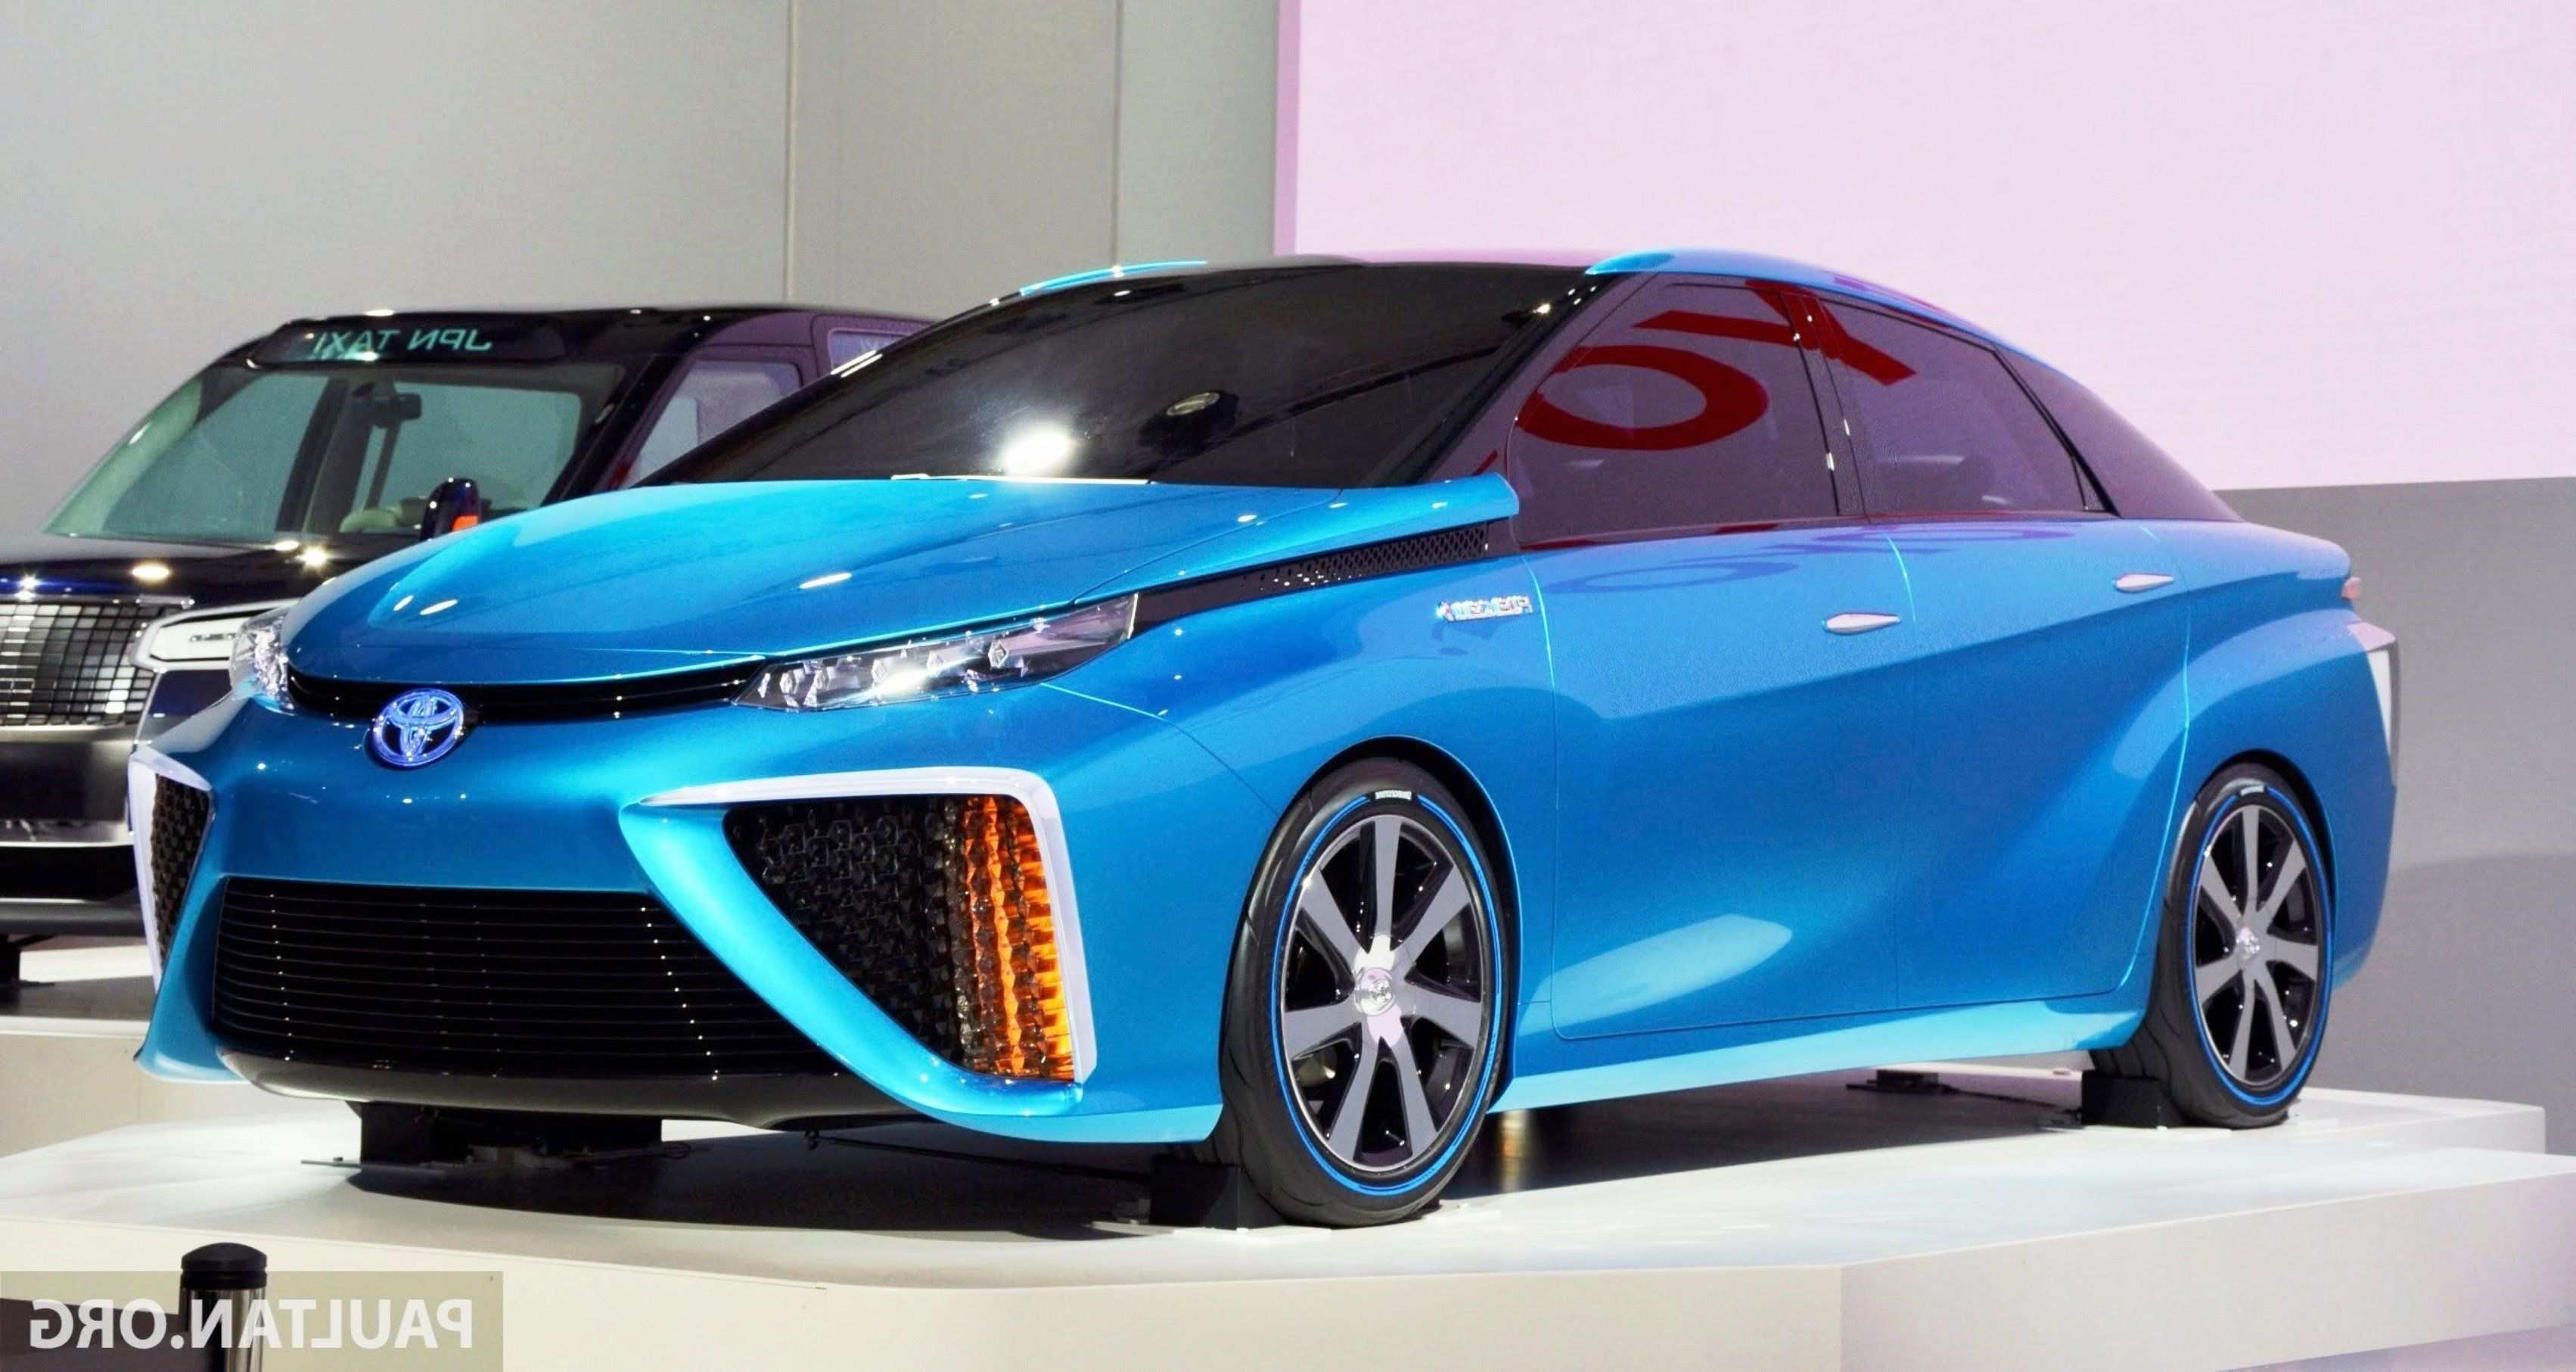 15 Gallery of Toyota Xle 2020 New Review with Toyota Xle 2020